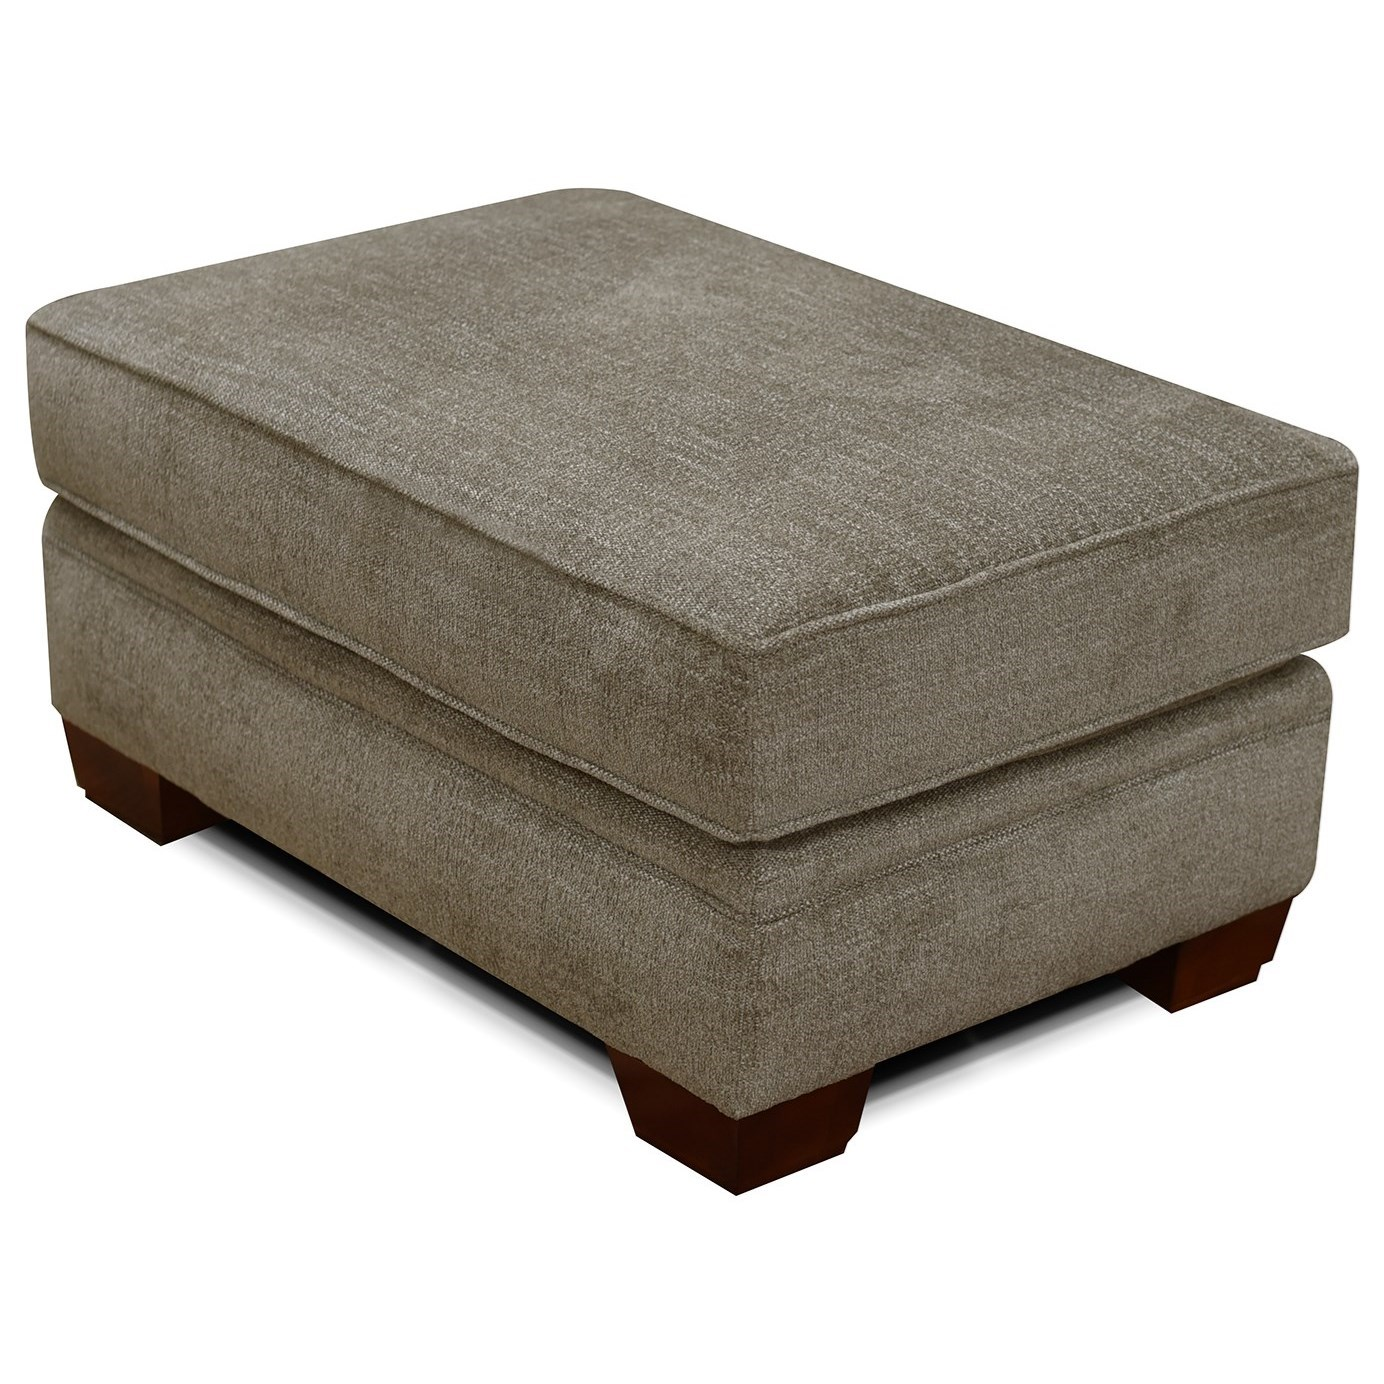 V140 Ottoman by Alexvale at Northeast Factory Direct